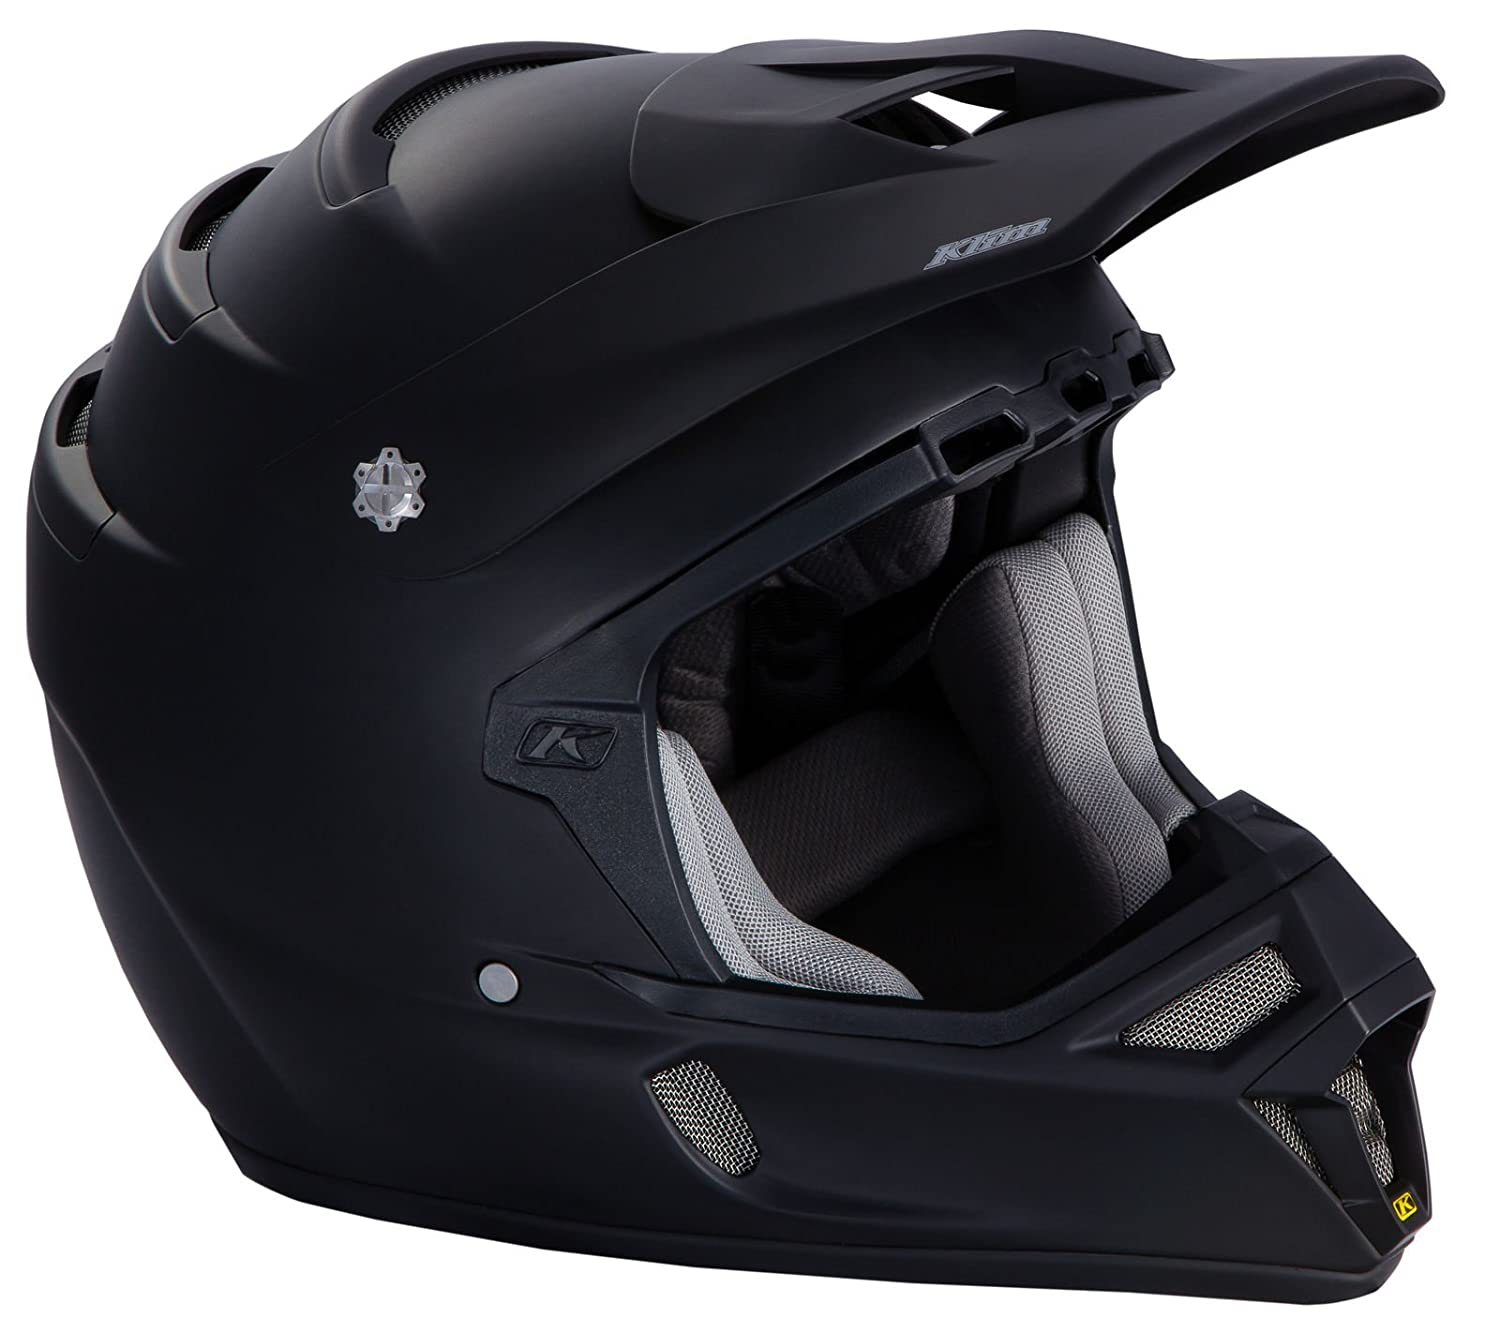 Amazon.com: Klim 5106-001-150-001 F4 Helmet ECE XL Matte Black: Automotive